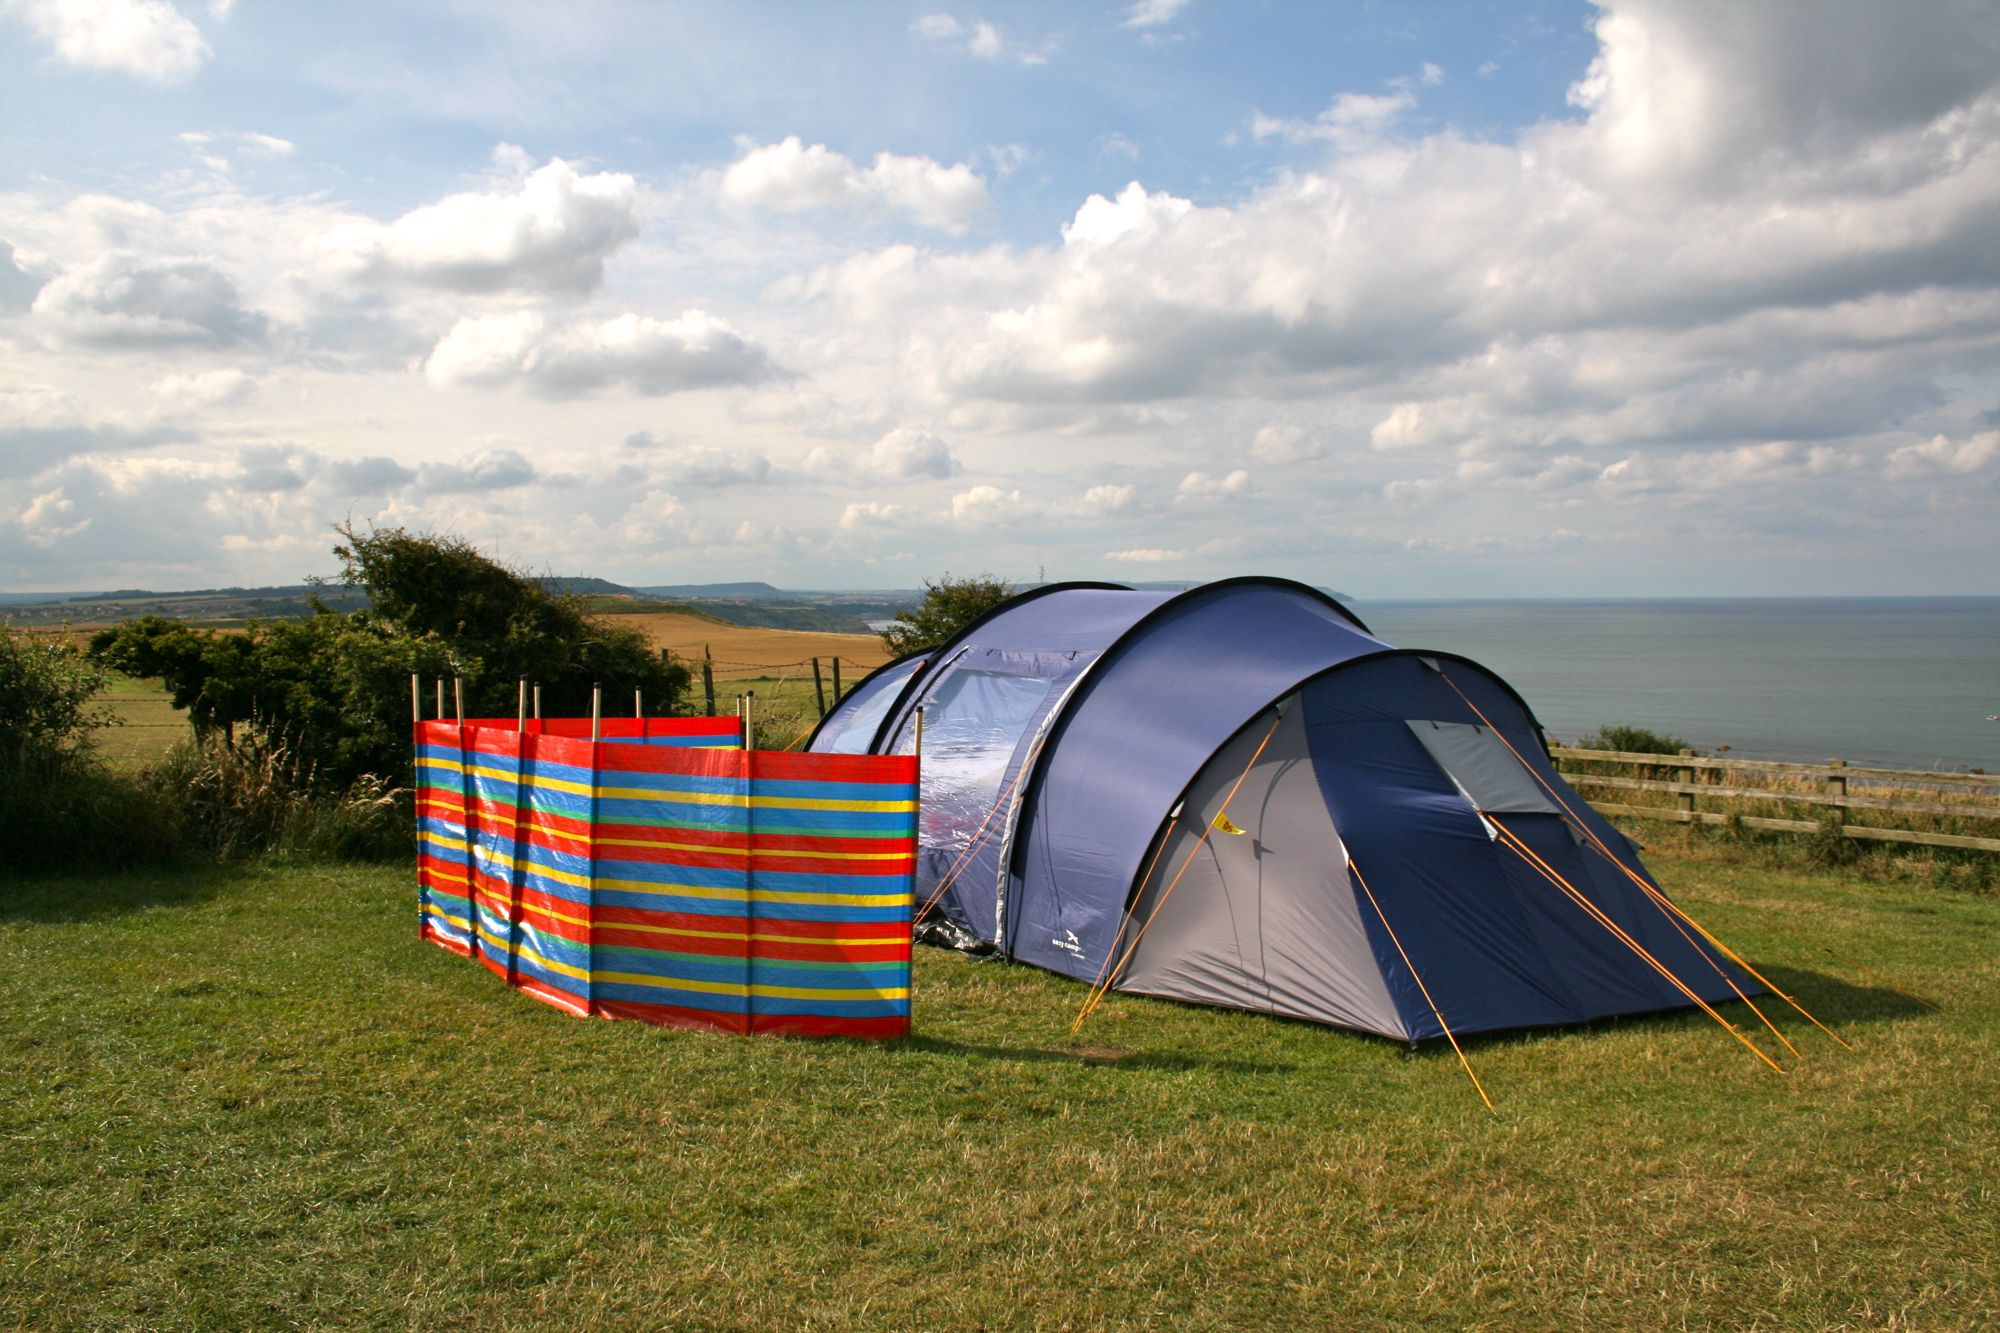 Campsites in Yorkshire 鈥� Top-rated campsites in Yorkshire 鈥� Cool 平博88体育